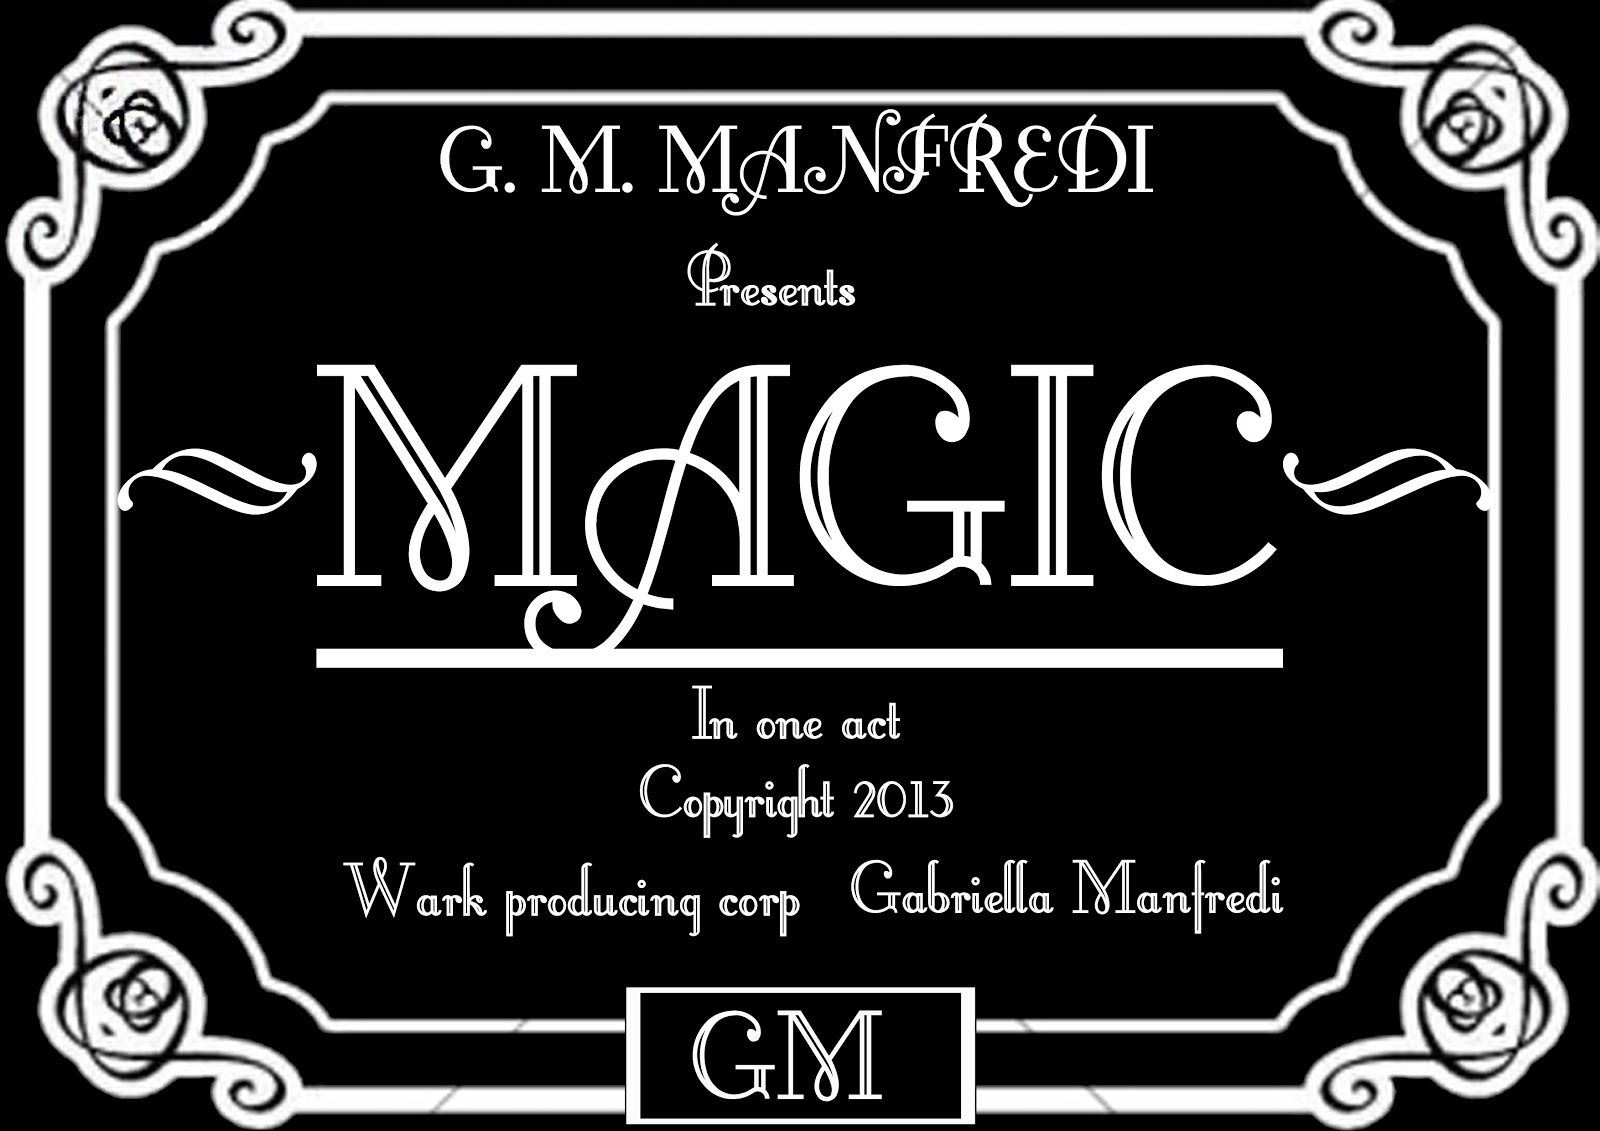 titles in silent film - inter-titles | developing technologies gm, Powerpoint templates